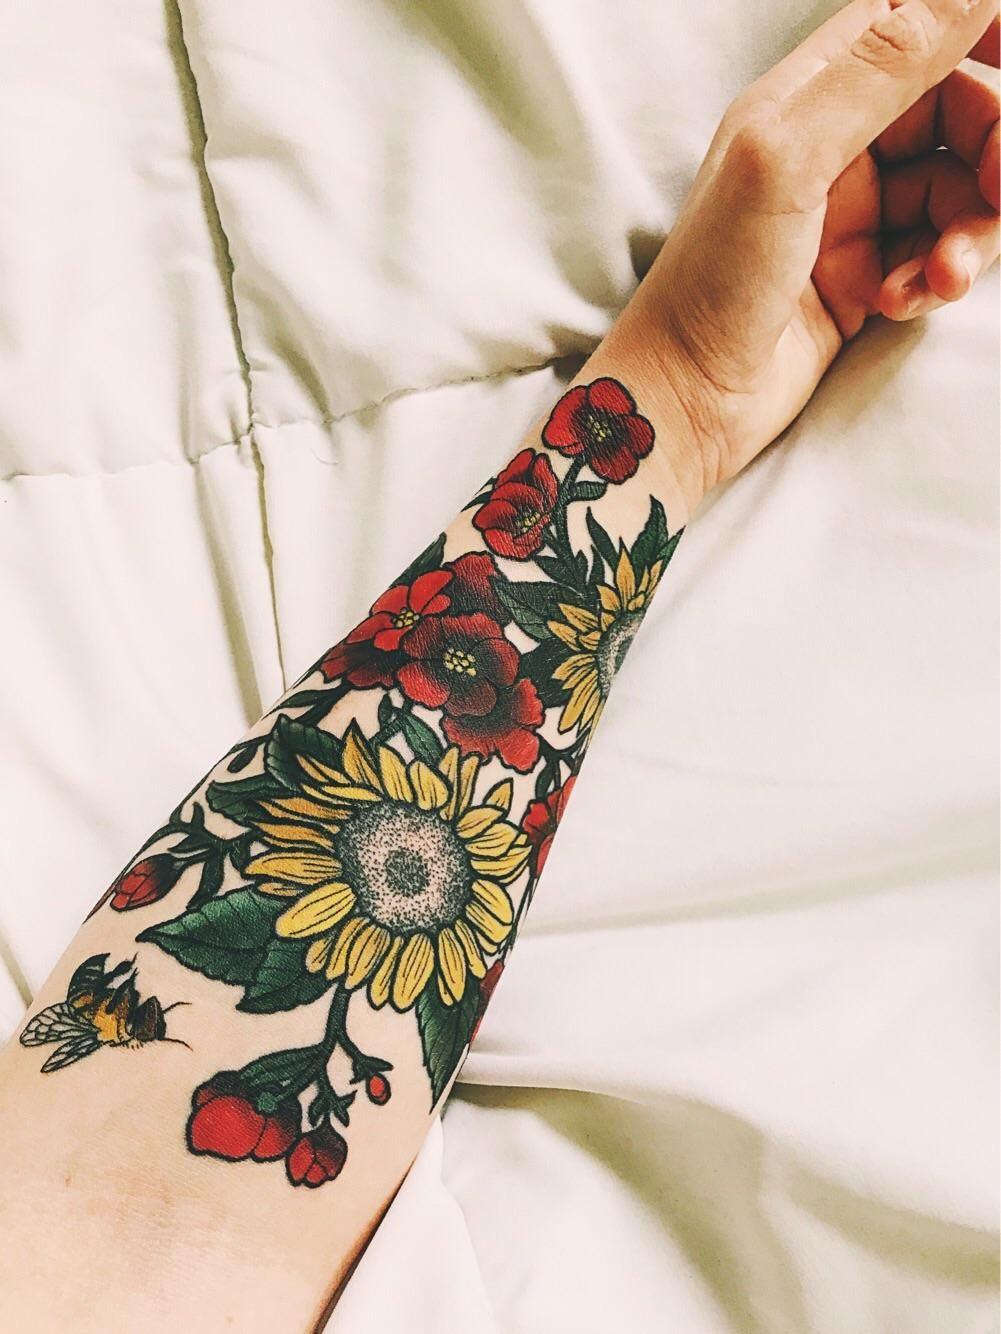 Floral tattoo done by sam at american crow tattoo in gahanna ohio